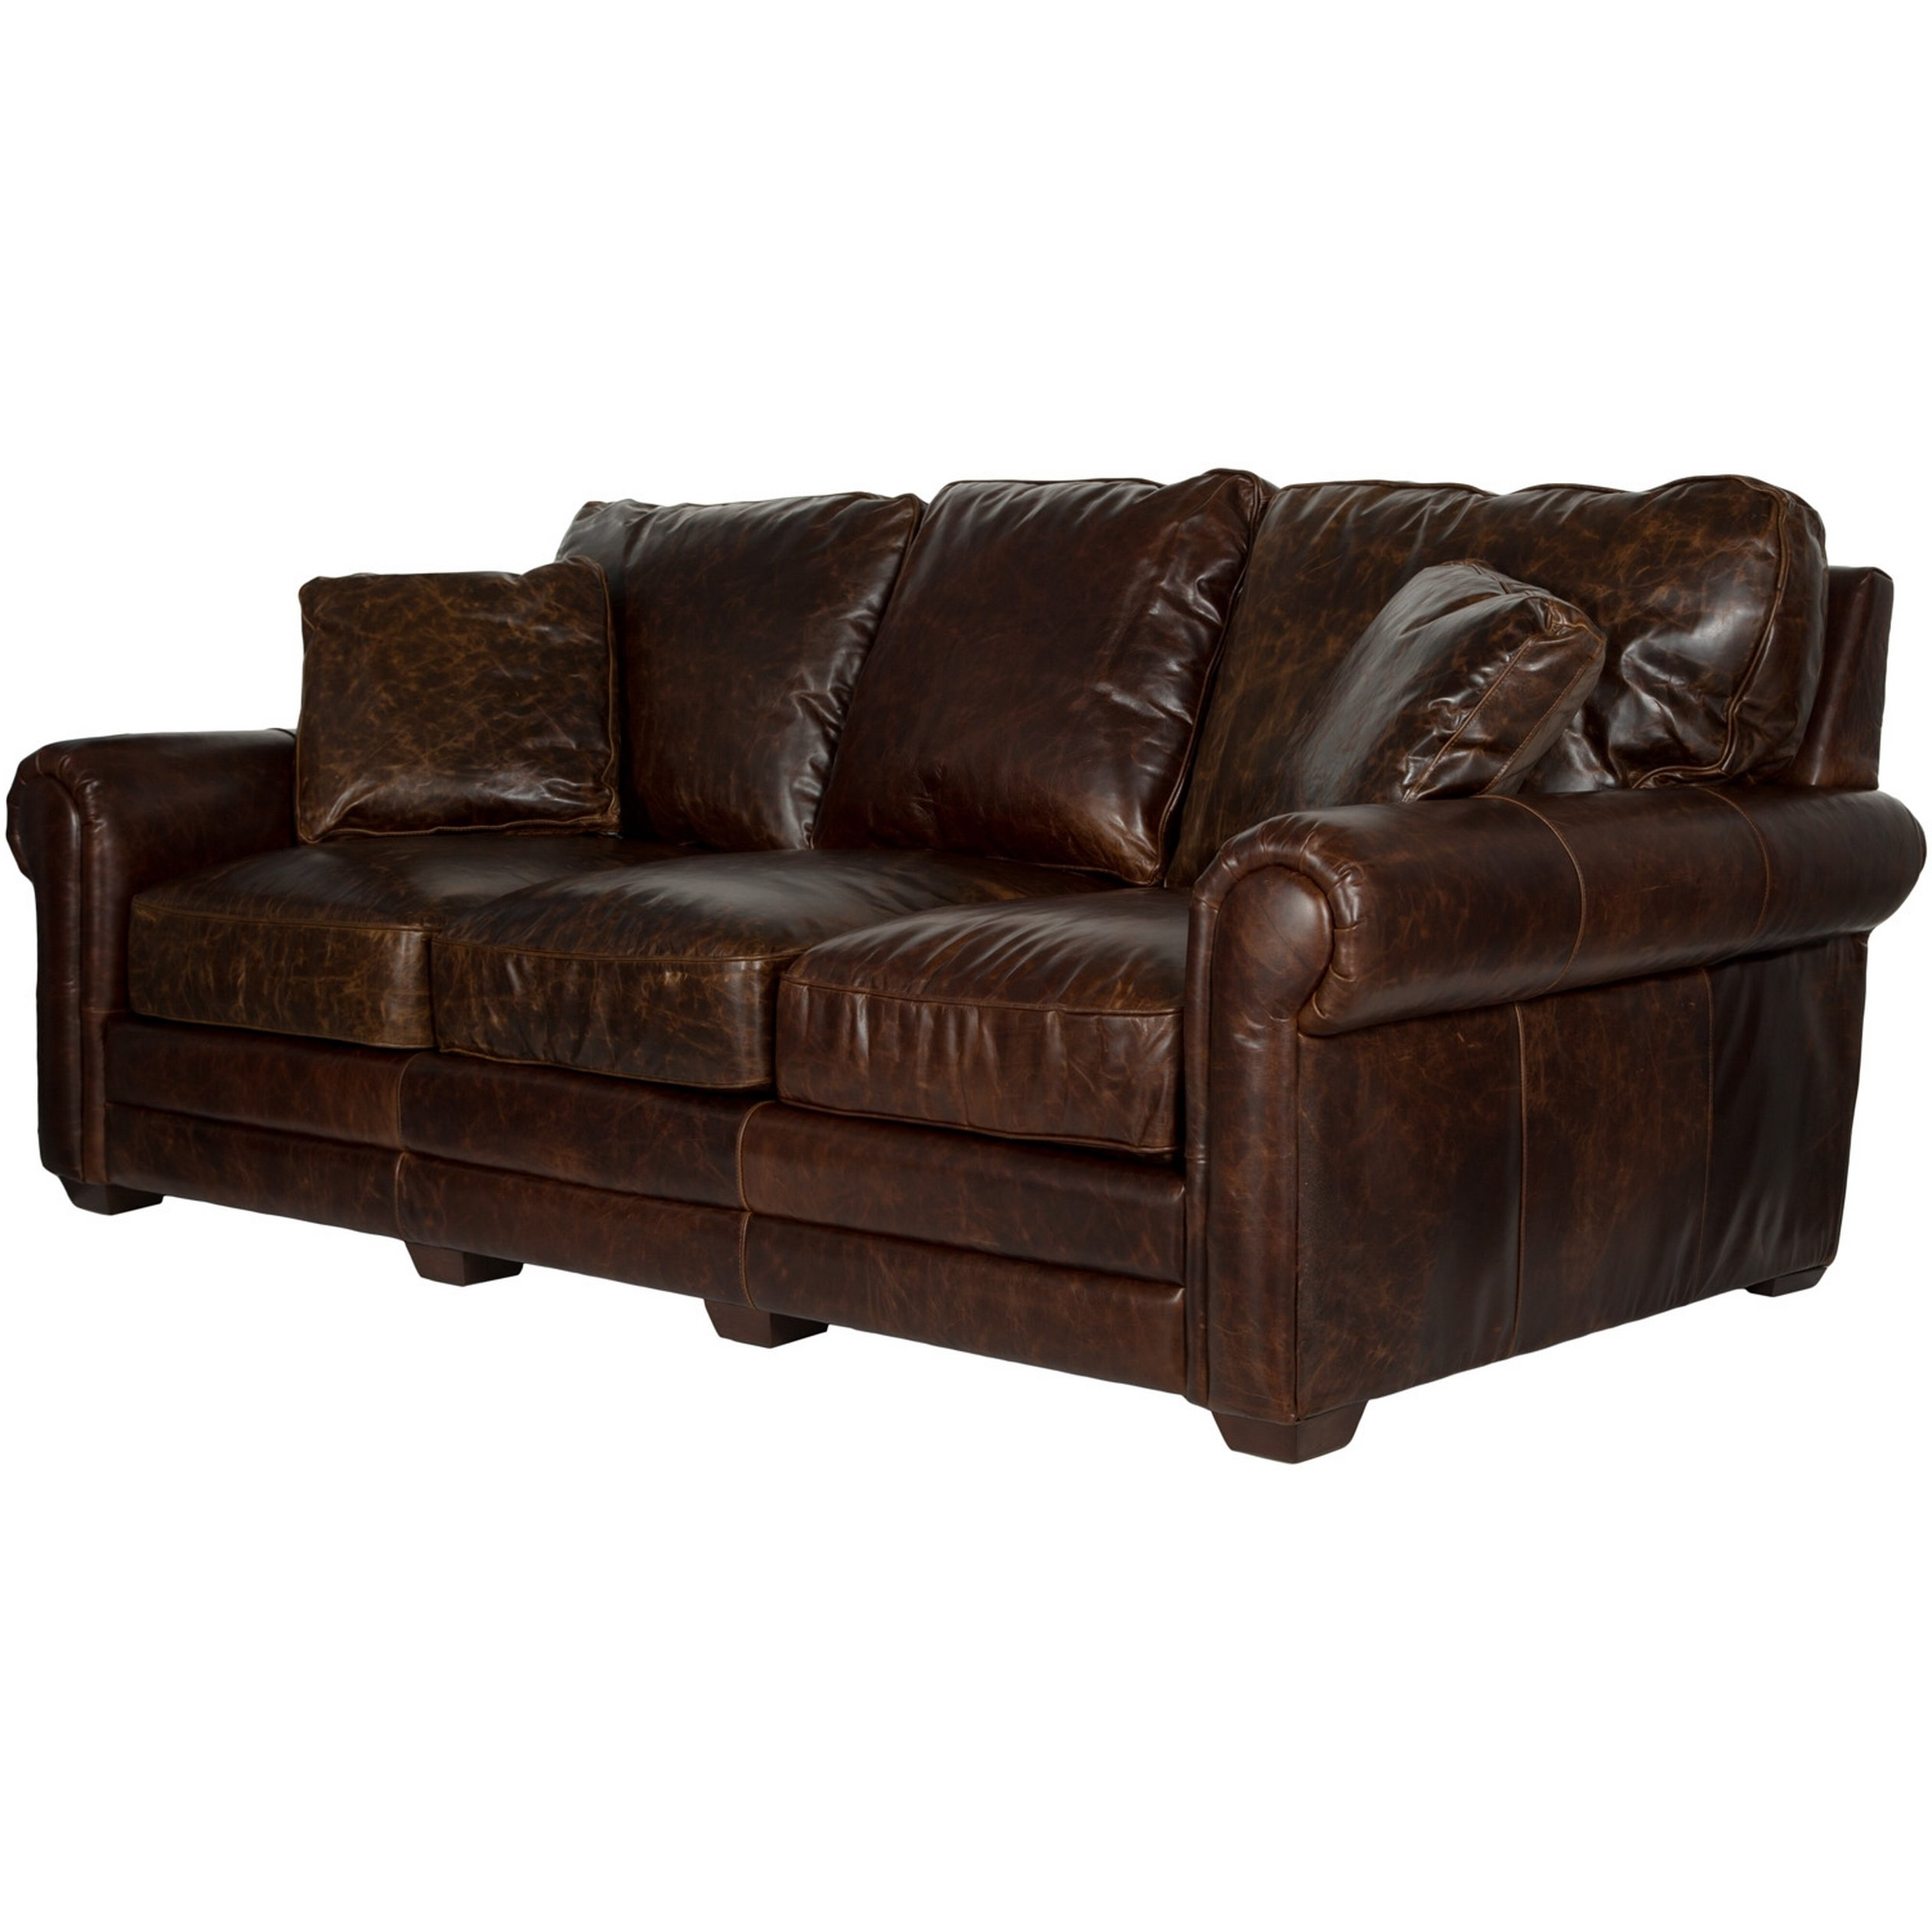 Well Liked Walter Leather Sofa Chairs Pertaining To Shop Safavieh Couture High Line Collection Walter Cocoa Leather Sofa (View 12 of 20)